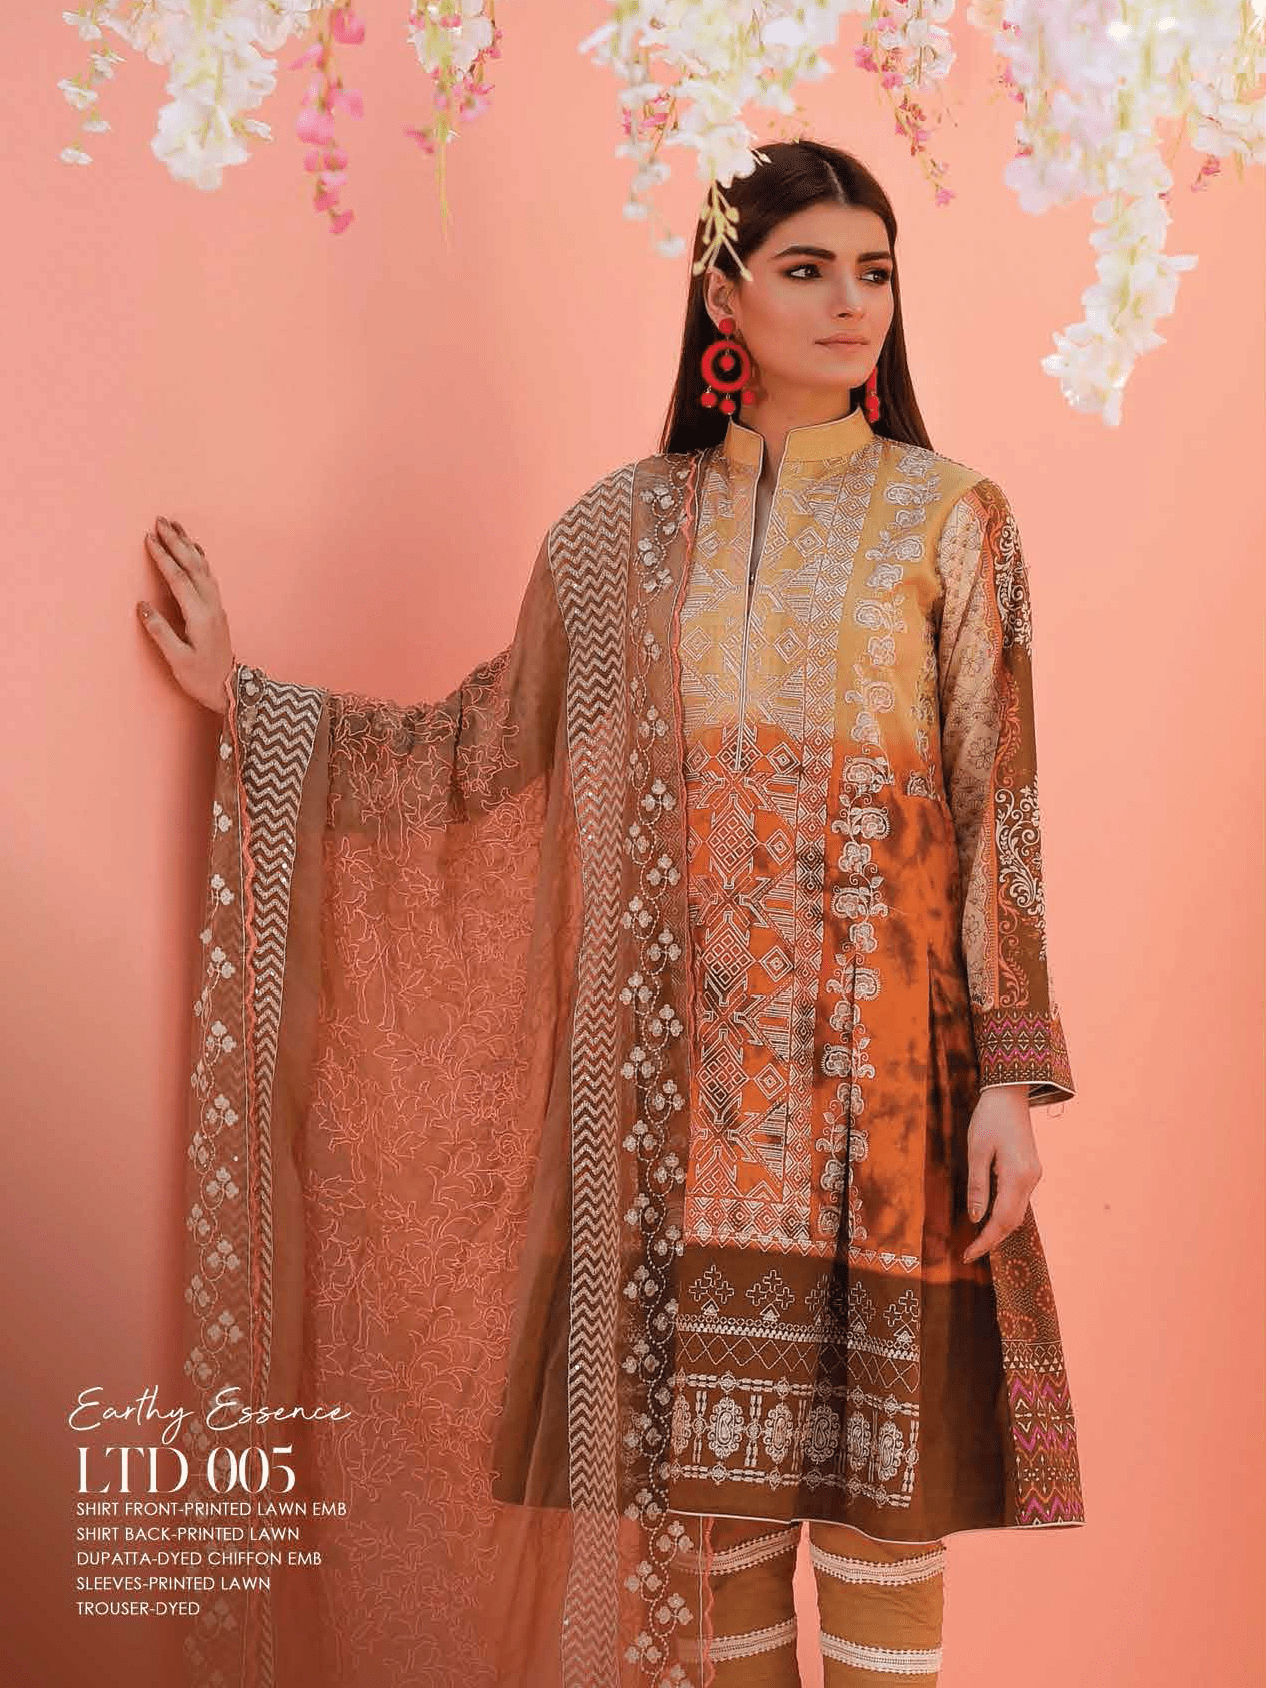 Lakhany Luxury Embroidered Lawn 2019 Unstitched 3PC Suit LTD 004 - FaisalFabrics.pk